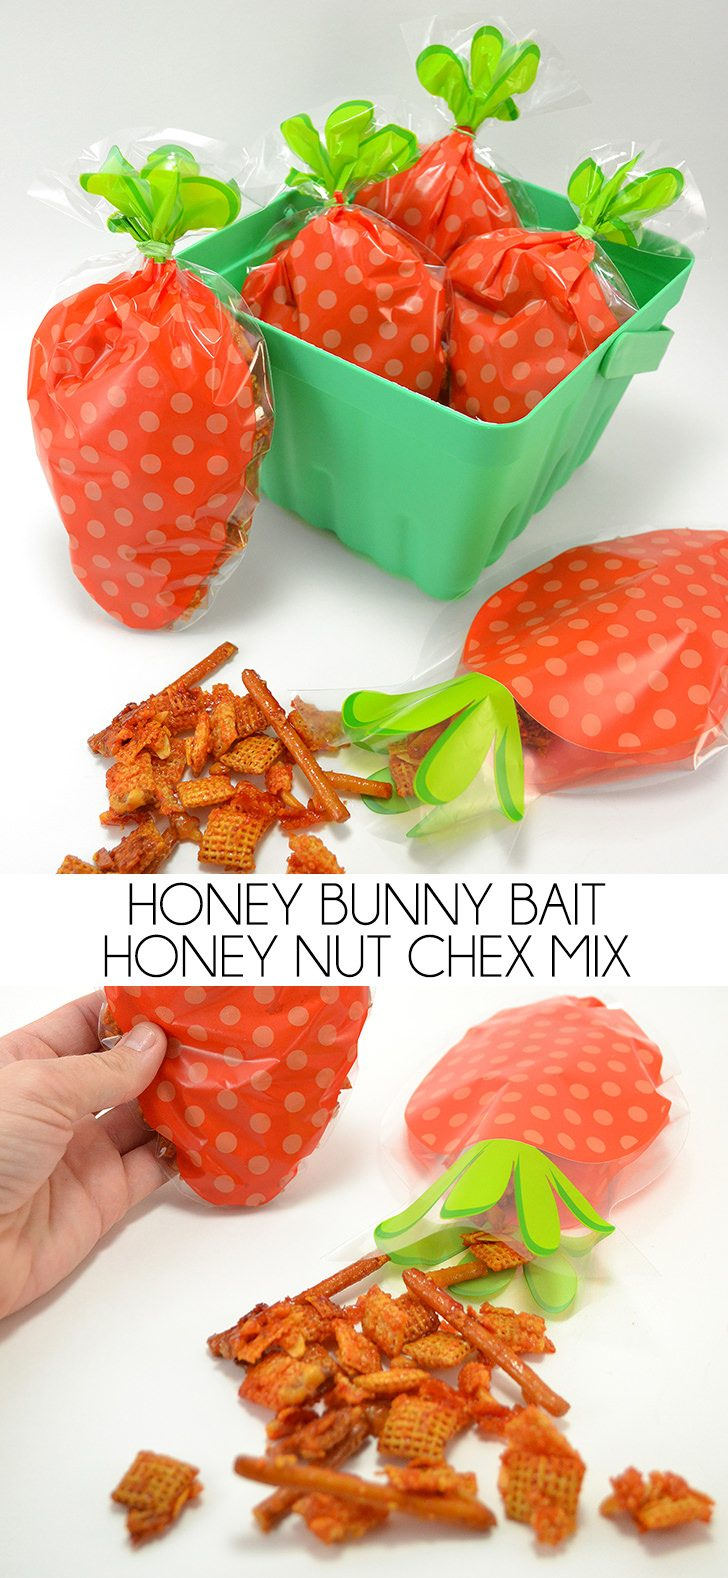 Honey Bunny Bait – Honey Nut Chex Mix Recipe